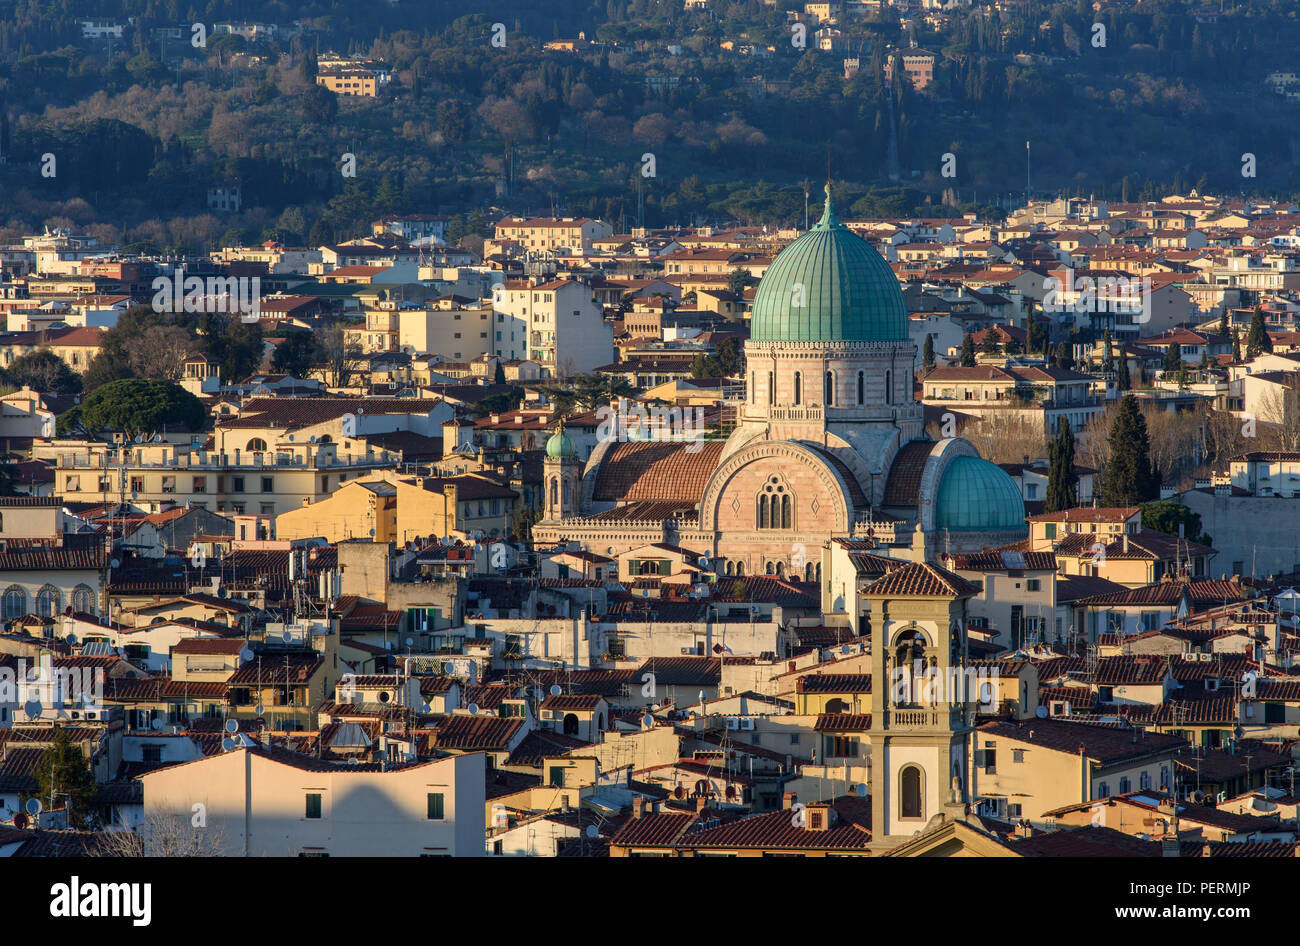 Florence, Italy - March 22, 2018: The Synagogue of Florence rises from streets of traditional houses in the city. - Stock Image